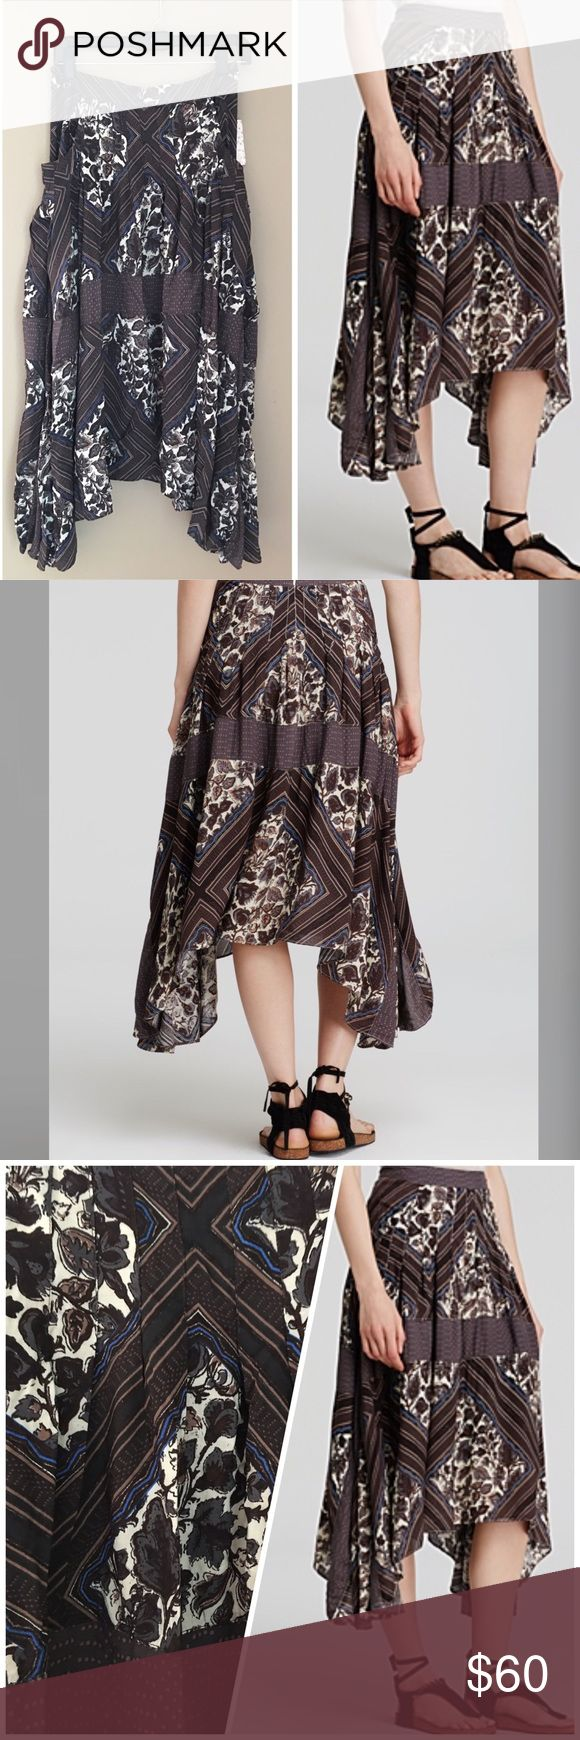 """Bohemian asymmetrical skirt Stripes, microdots and hand-drawn flowers define the pattern-blocked design of a pleated midi skirt cut with a drapey handkerchief hem. - Banded waist - Hidden back zip closure - Allover print - Side pockets - Pleated construction - Handkerchief hem. Back zipper  - Approx. 28"""" shortest length, 36"""" longest length. Waist 30"""" Free People Skirts Asymmetrical"""